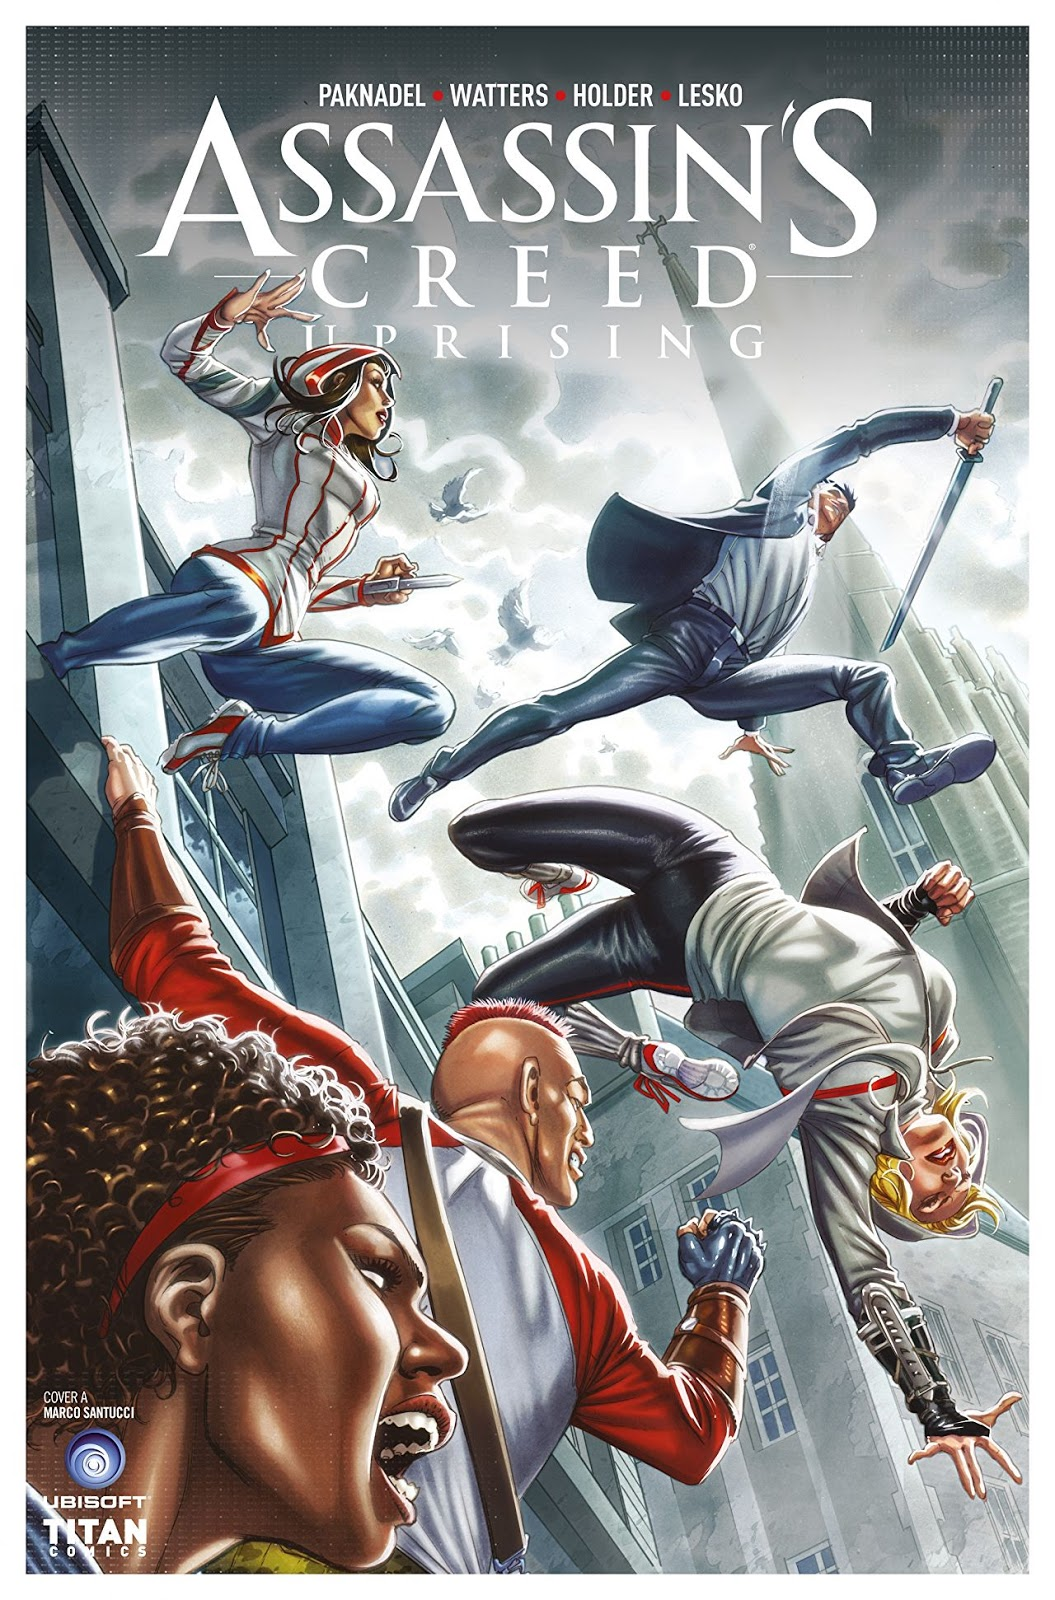 Weekly New Comics Releases  Frequently Update